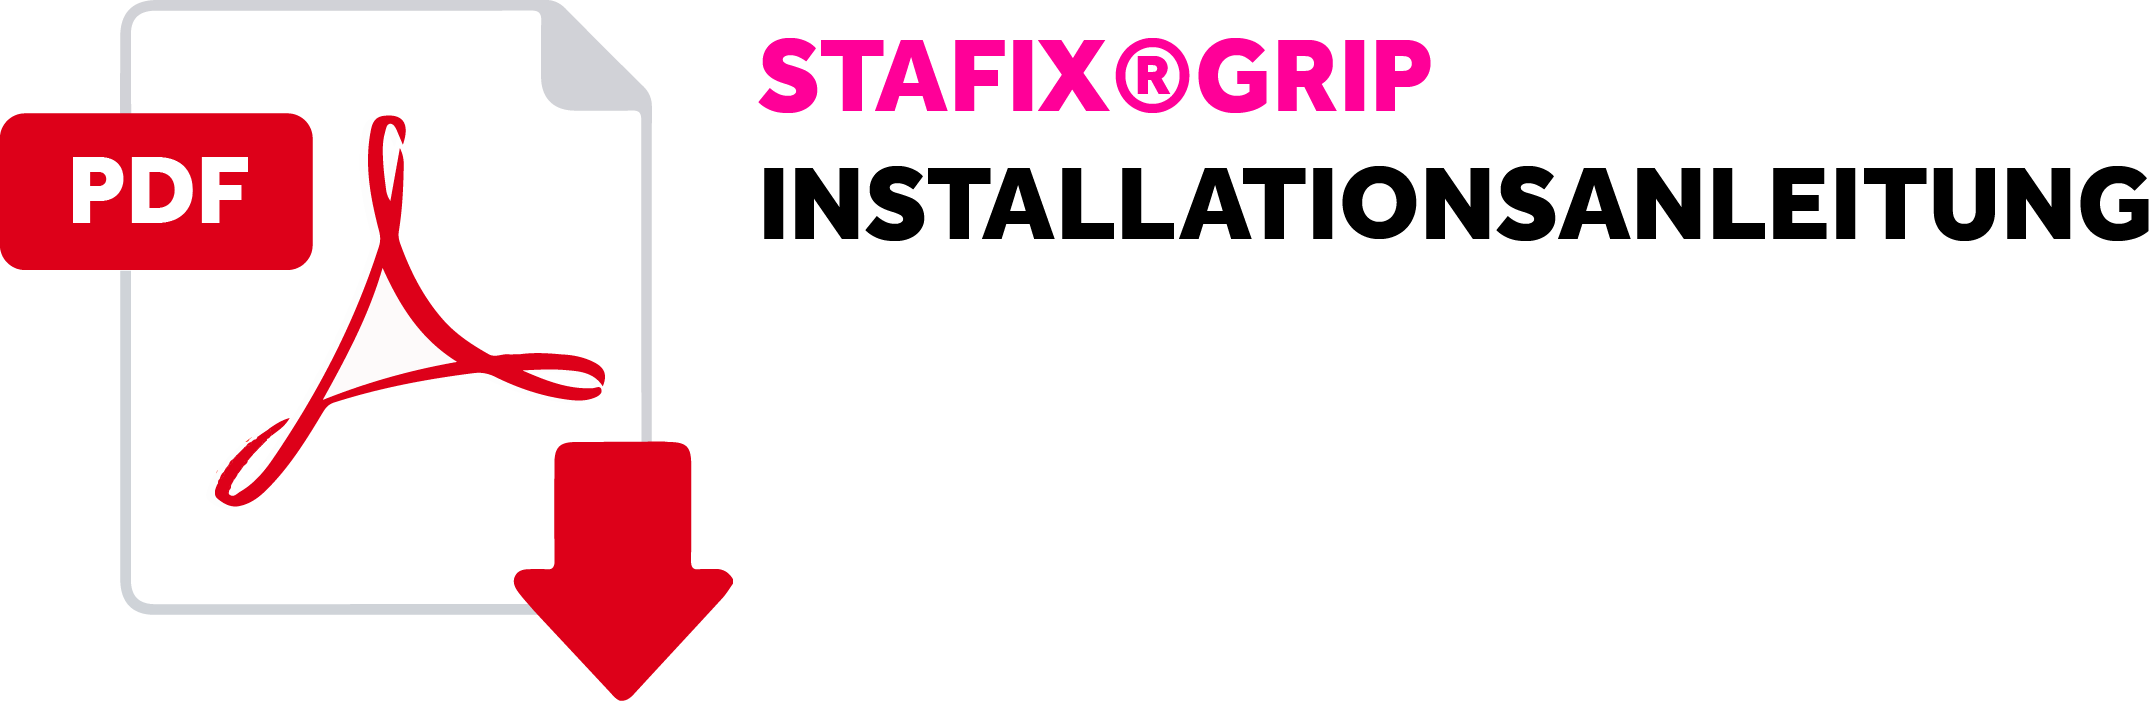 stafixgrip_download_use_installation_guideline_8_2016_ger